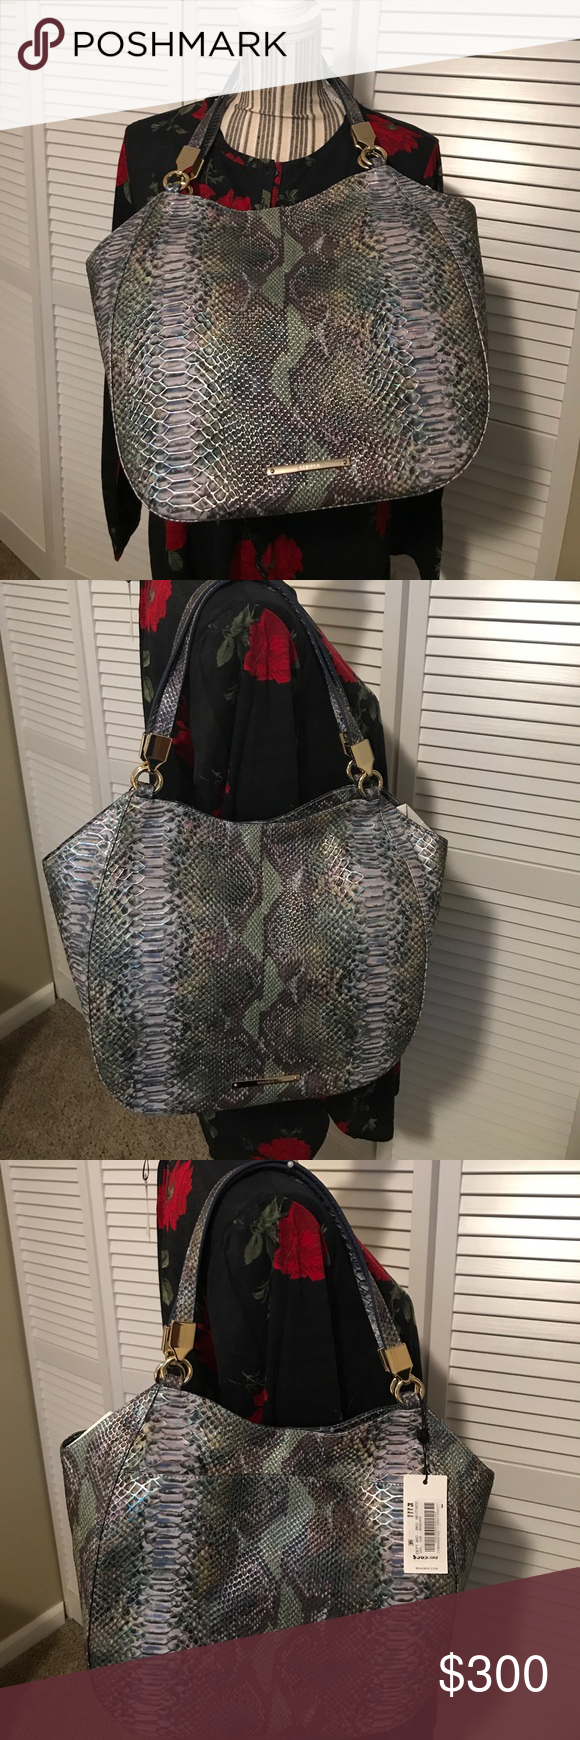 Brahmin bag New with tags Brahmin Marianna Seville moonstone, snake embossed leather bag. Genuine leather .. Authentic, wallet not included in this sale, check out different listing for the wallet. Brahmin Bags